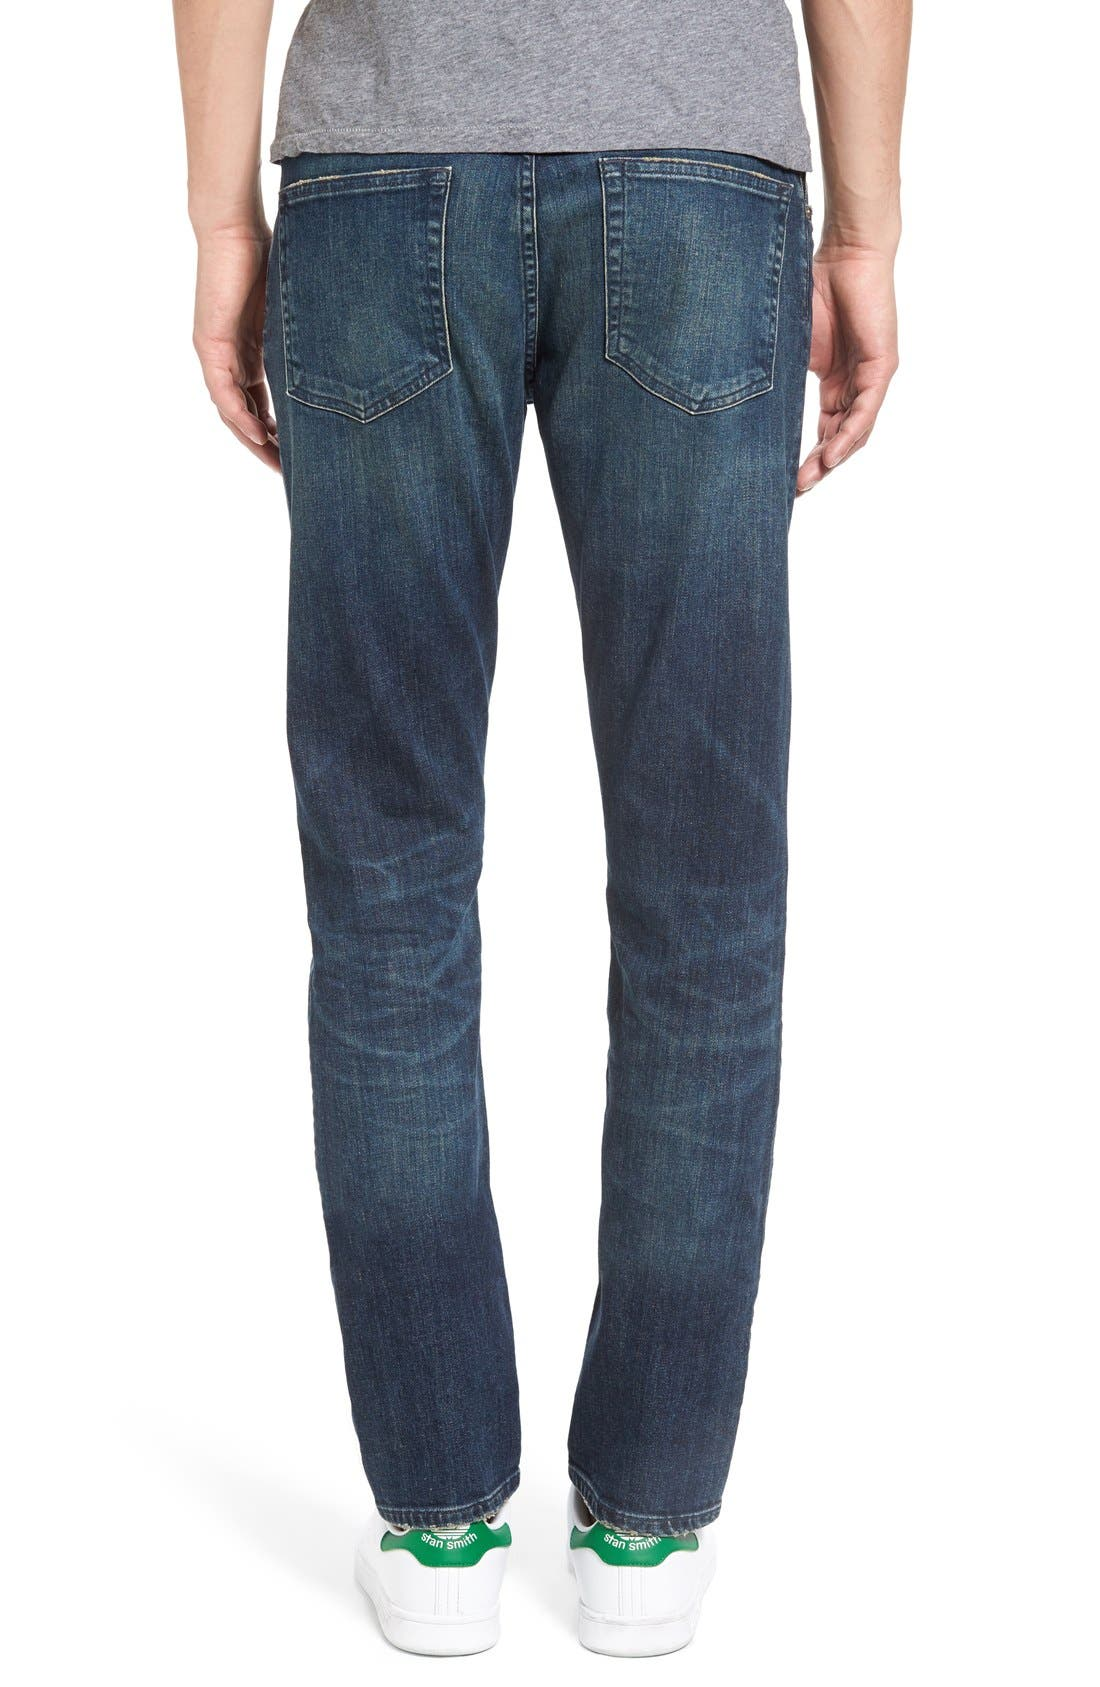 Bowery Slim Fit Jeans,                             Alternate thumbnail 2, color,                             Wild